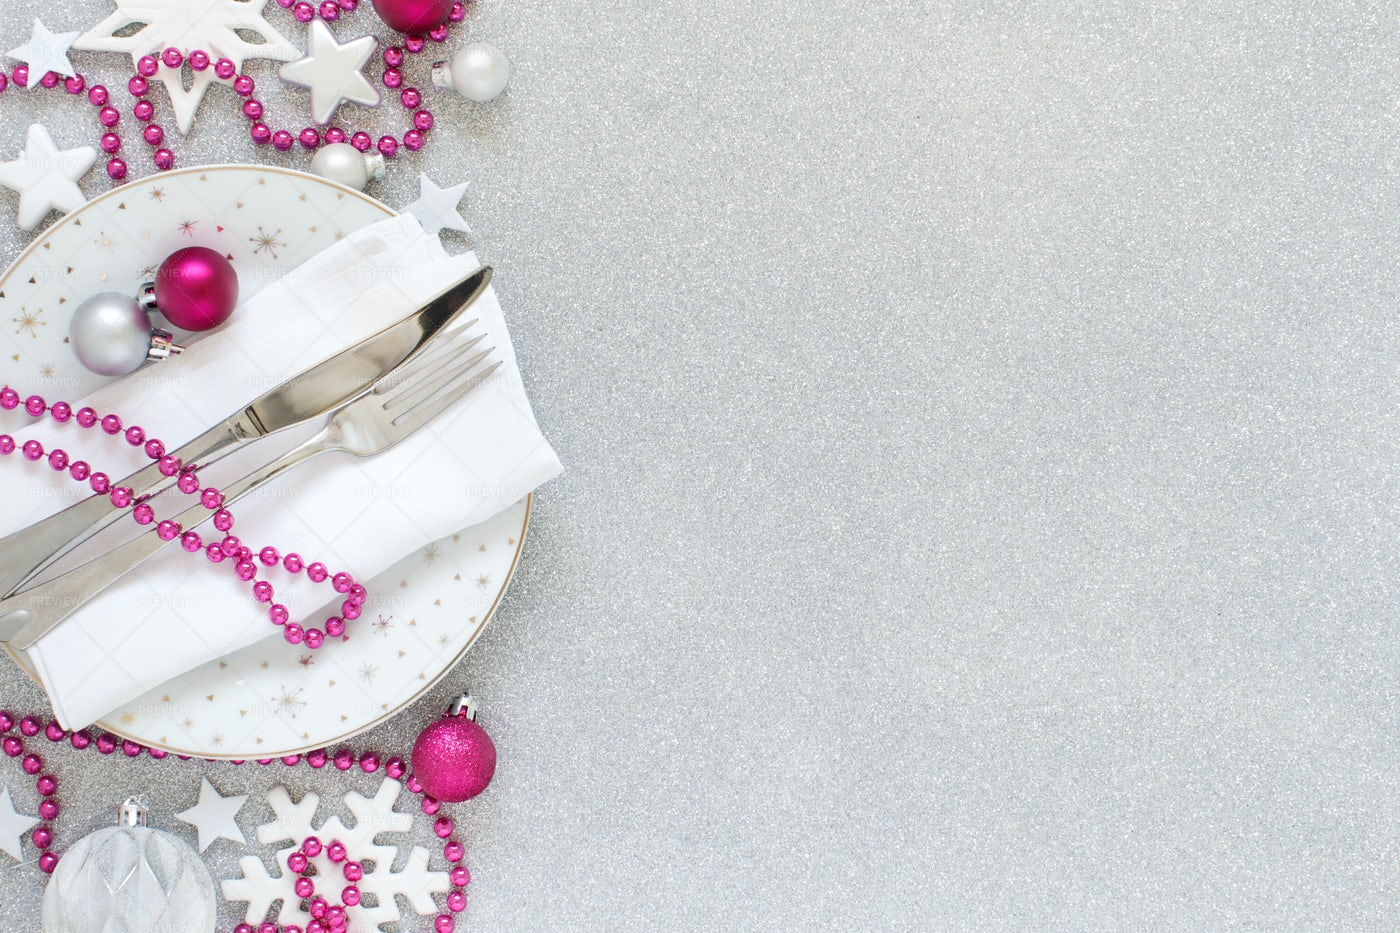 Silver And Pink Christmas Table Setting: Stock Photos